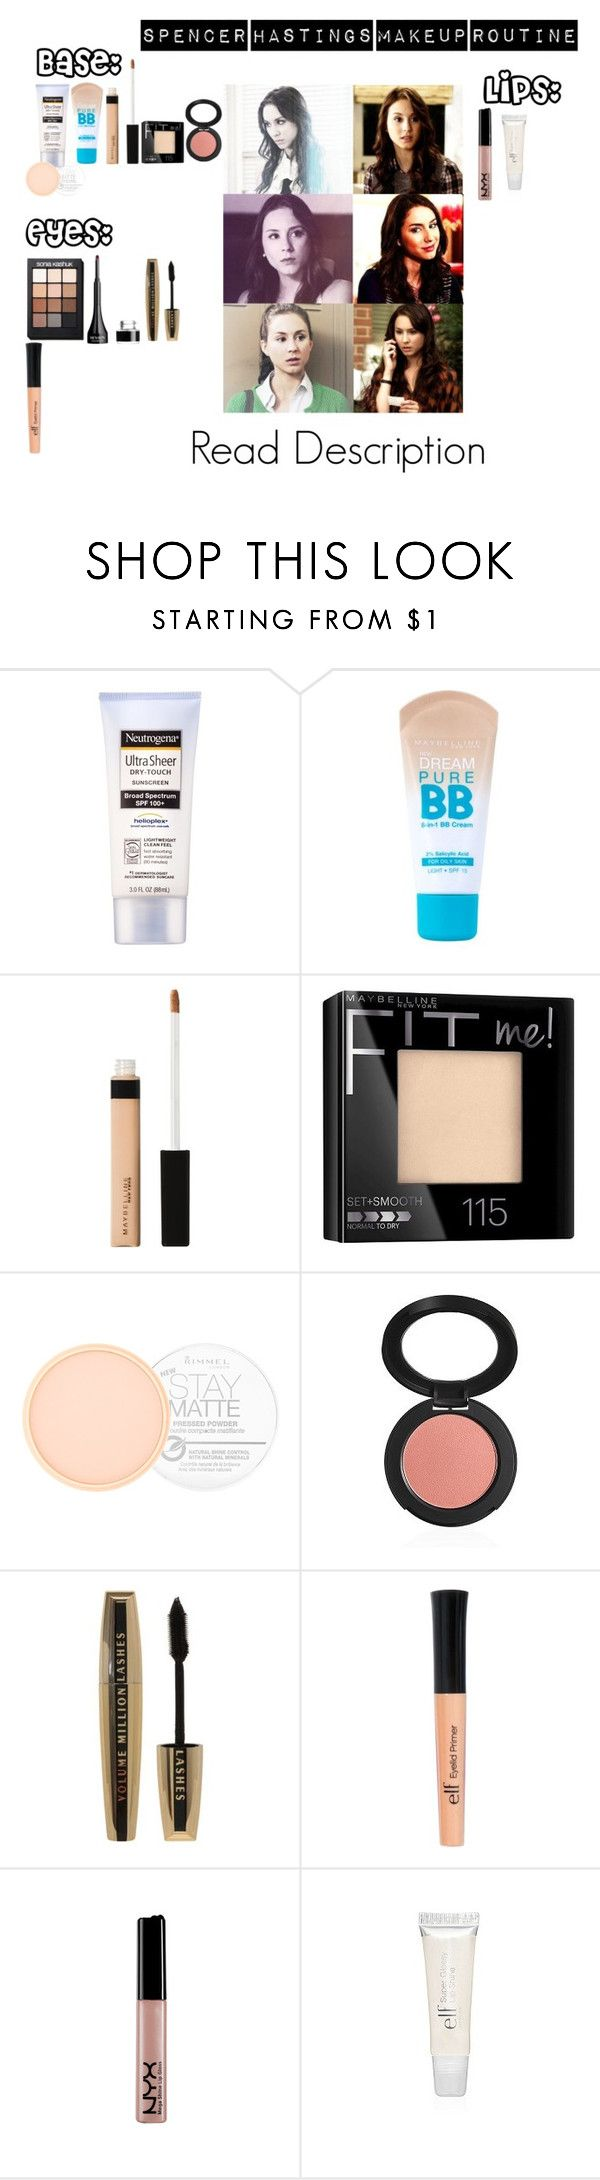 """""""Spencer Hastings's Makeup Routine"""" by akirarae ❤ liked on Polyvore featuring beauty, Neutrogena, Maybelline, Rimmel, Sonia Kashuk and L'Oréal Paris"""